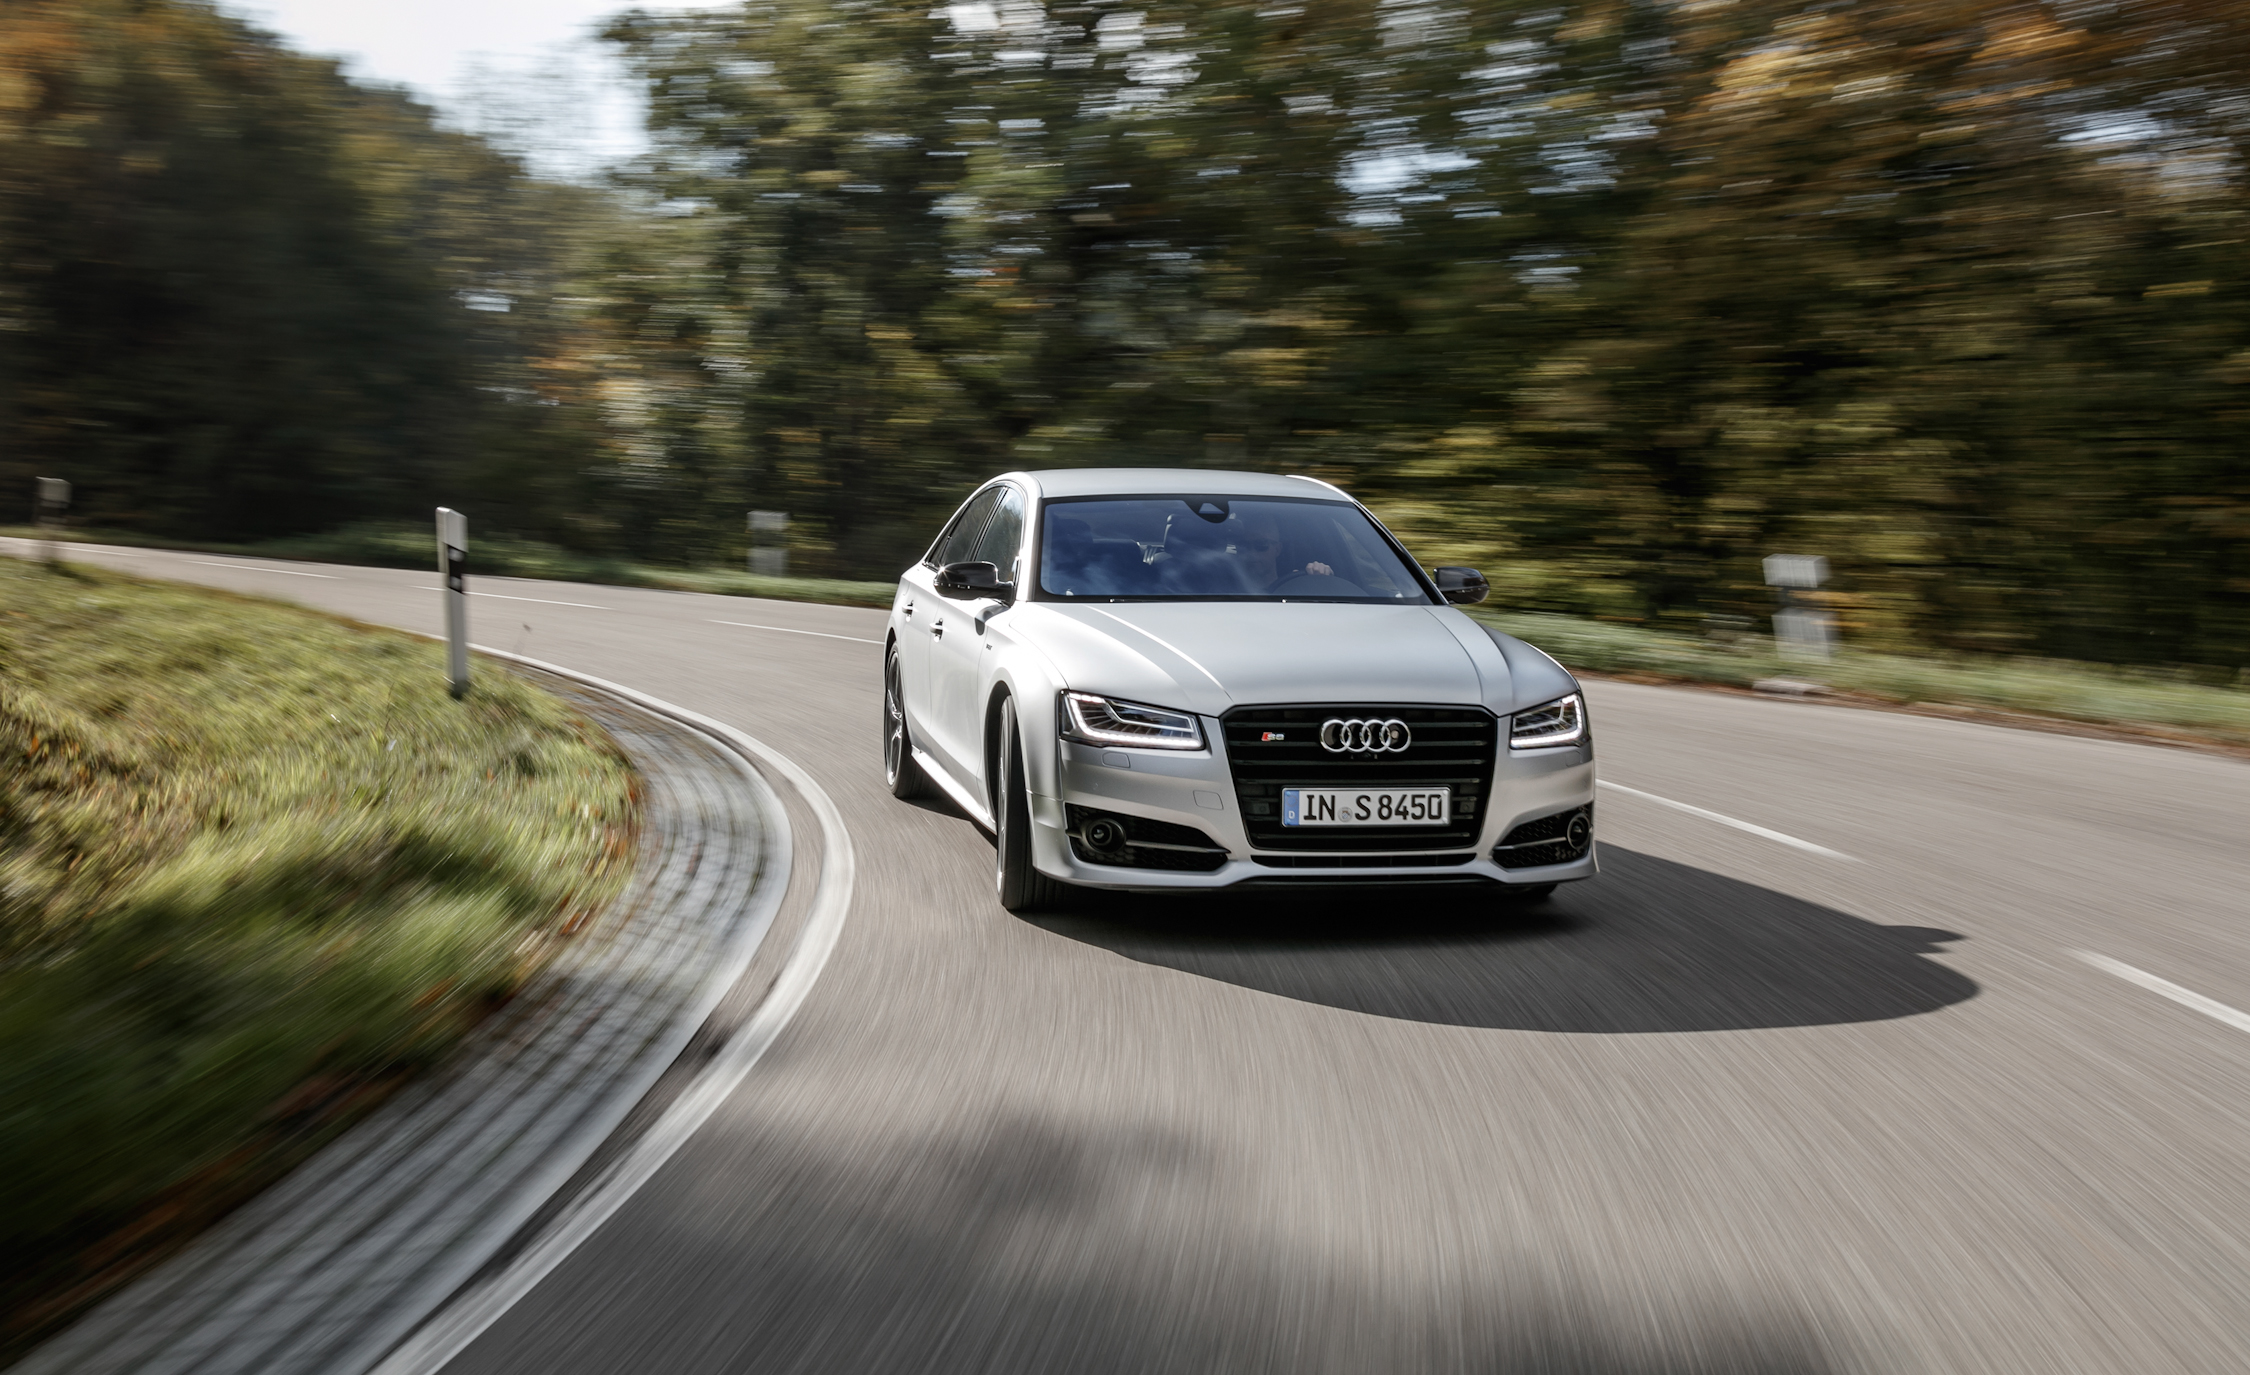 2016 Audi S8 Plus (Photo 1 of 12)